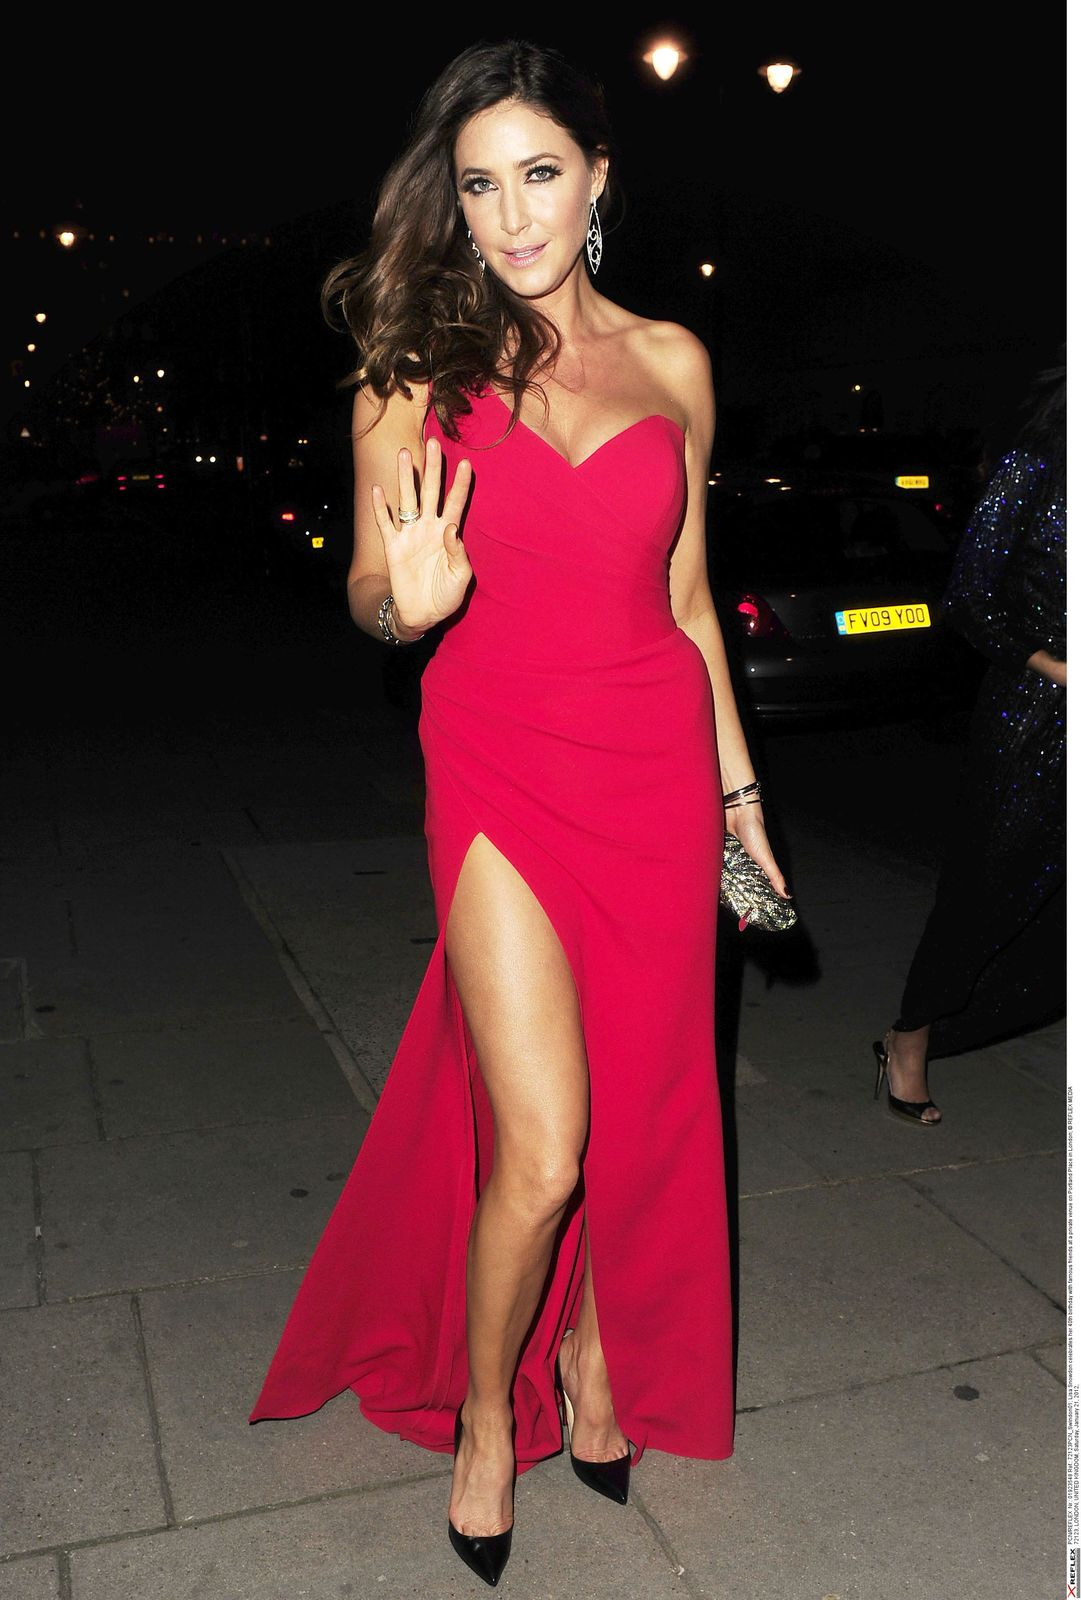 """Lisa Snowdon"" Luks Fabulously Leggy in Red Outfits"